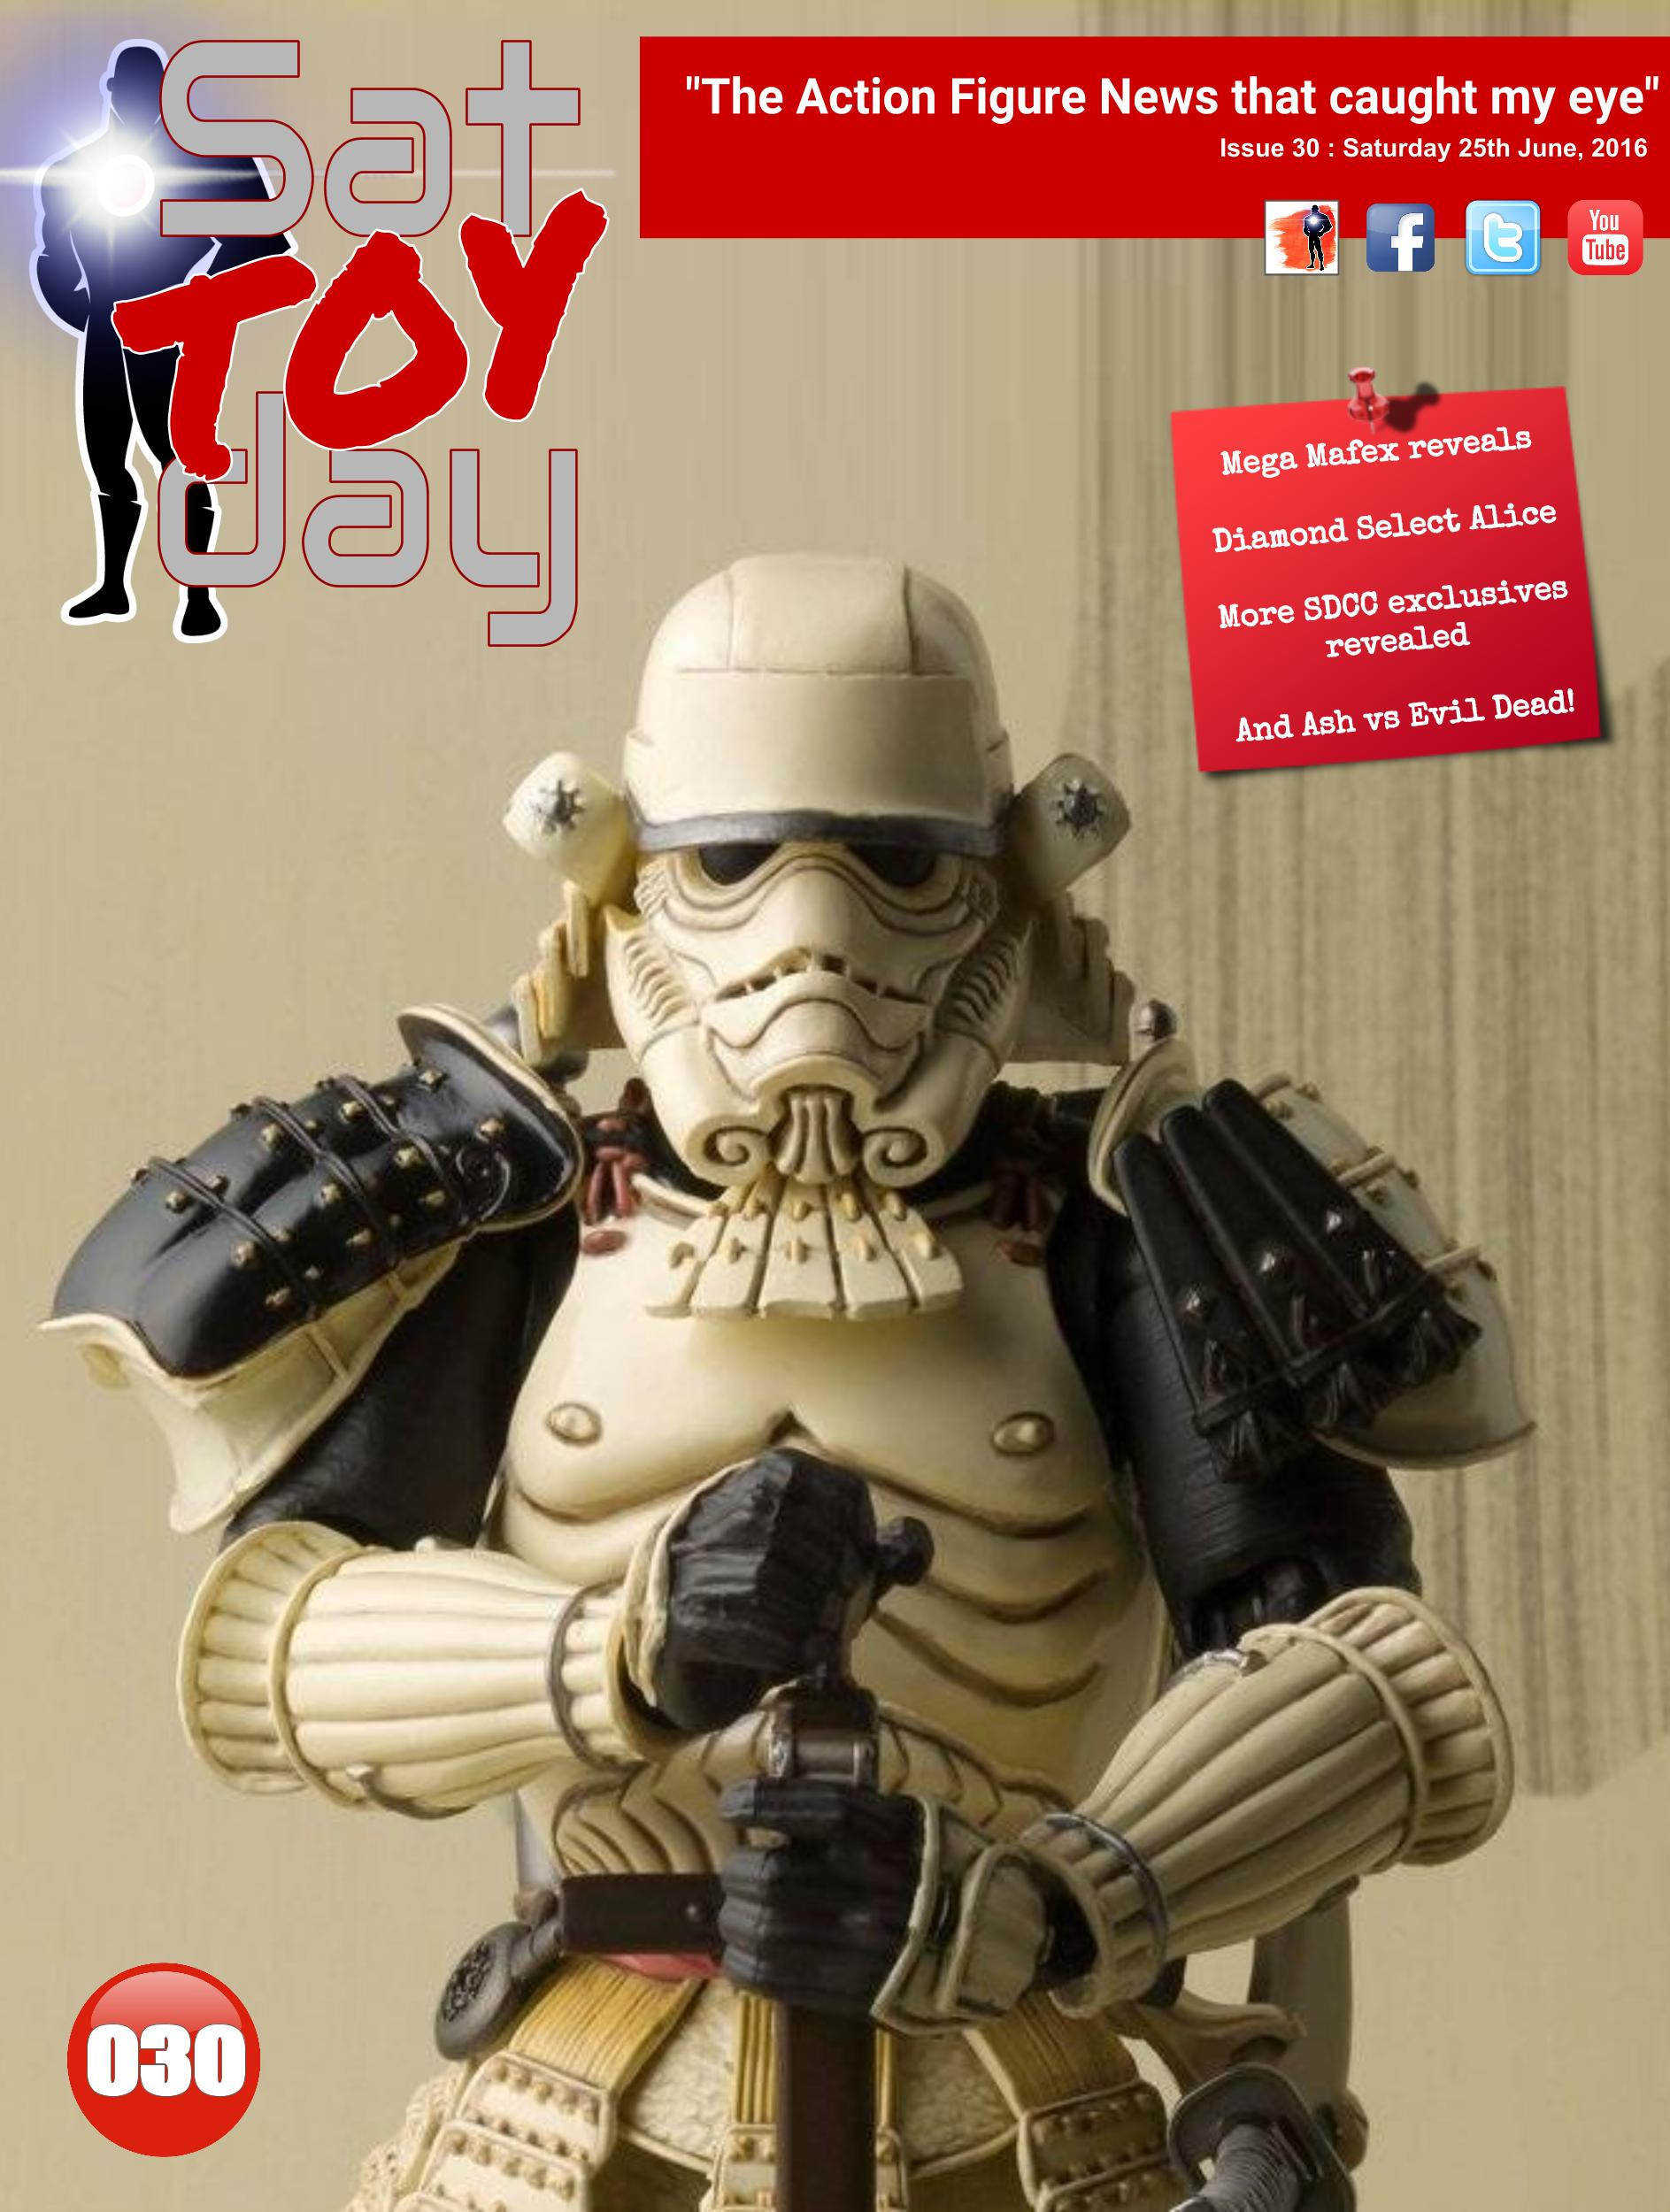 030 Action Figure Sat-TOY-day News, 25th June 2016